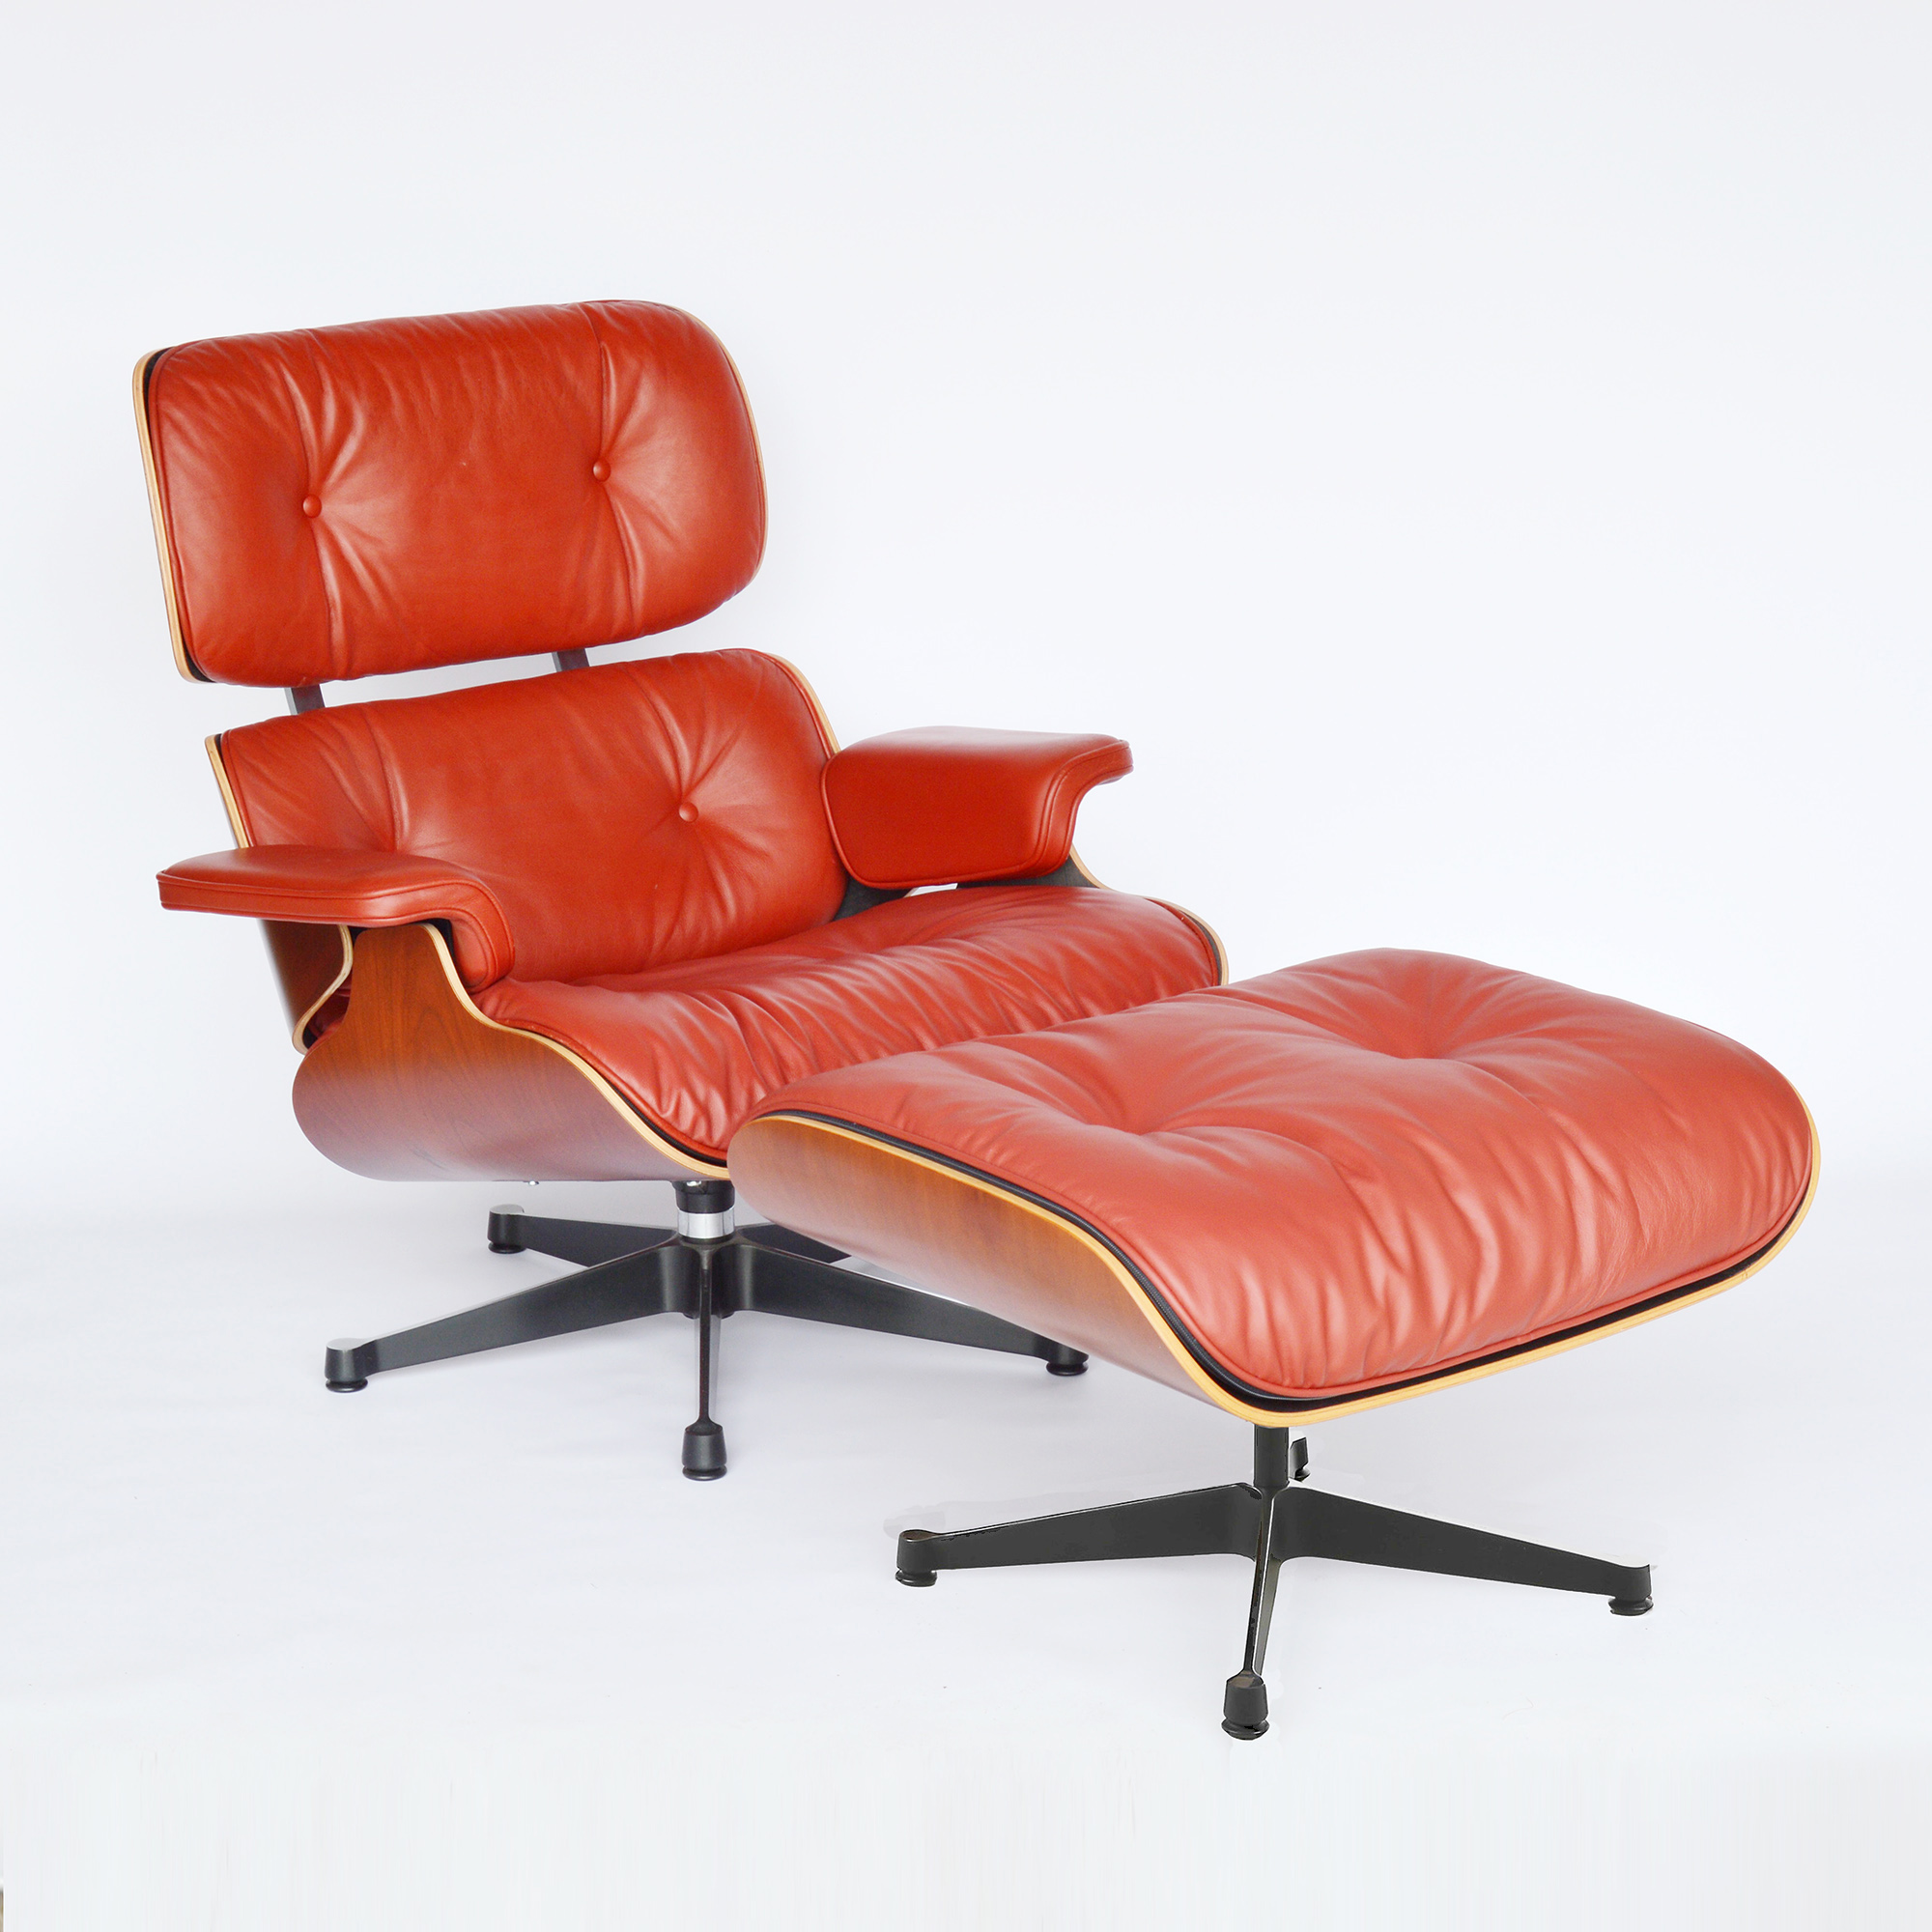 Eames lounge chair nachbau qualit t charles eames alu for Barcelona sessel nachbau